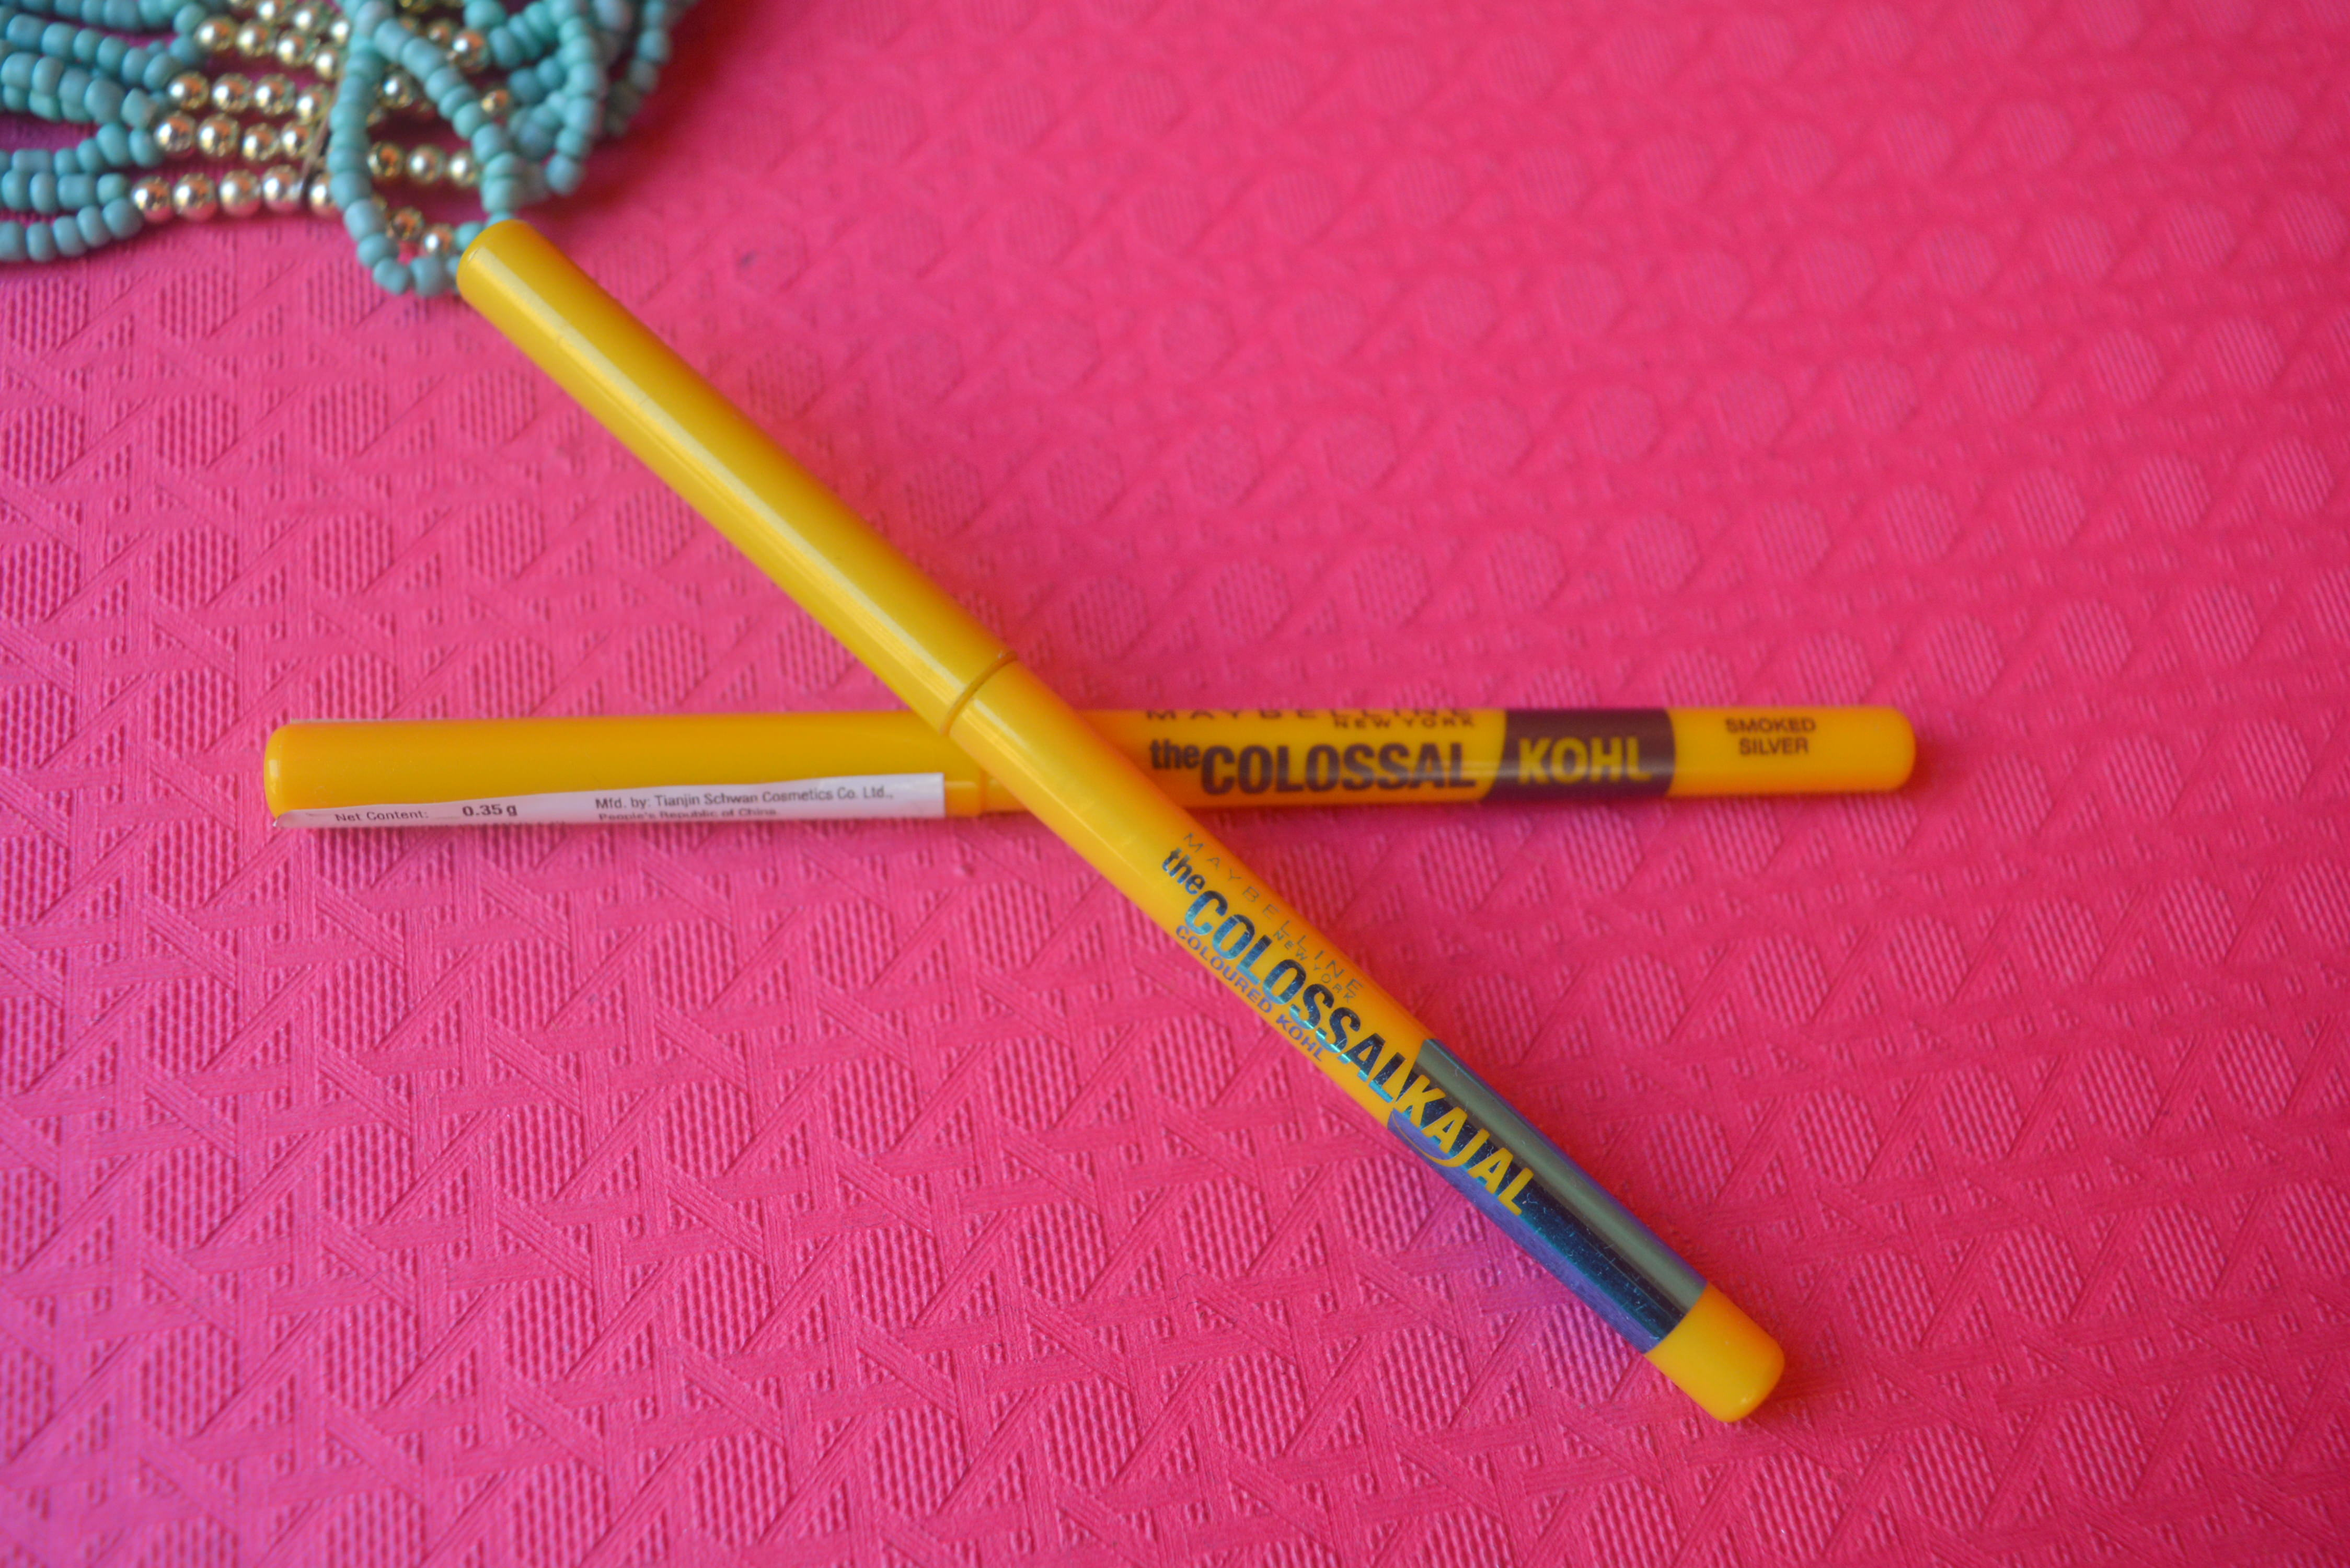 Maybelline Colossal Kohl Kajal - Turquoise & Smoked Silver   Review